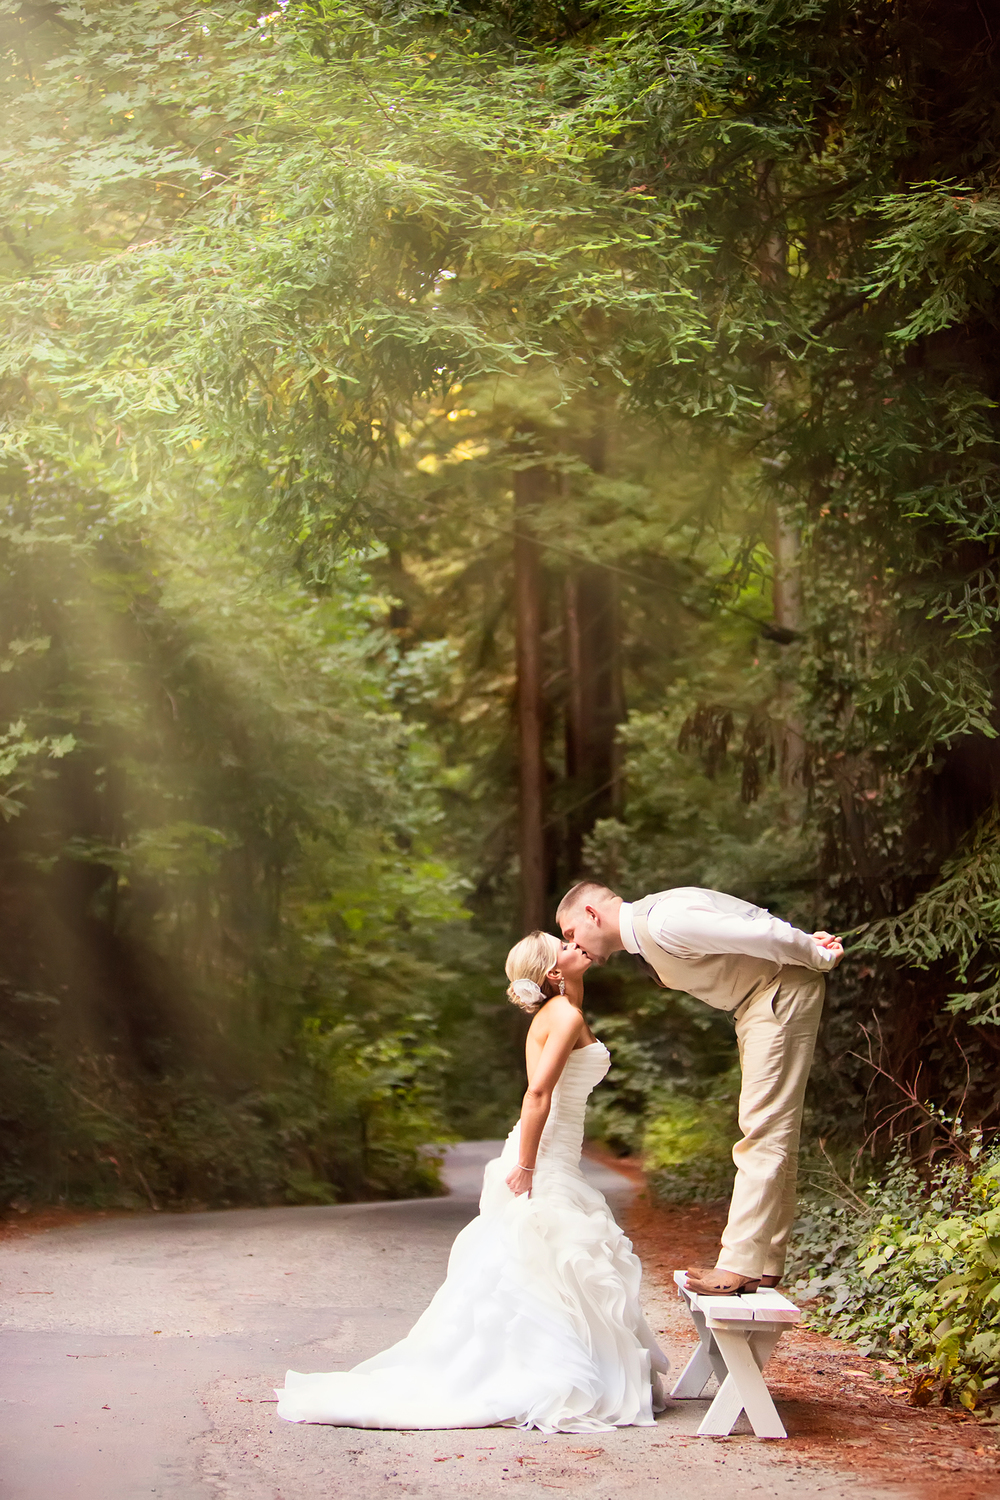 Dena_Rooney_Wedding_Photographer_Santa_Cruz_016.jpg